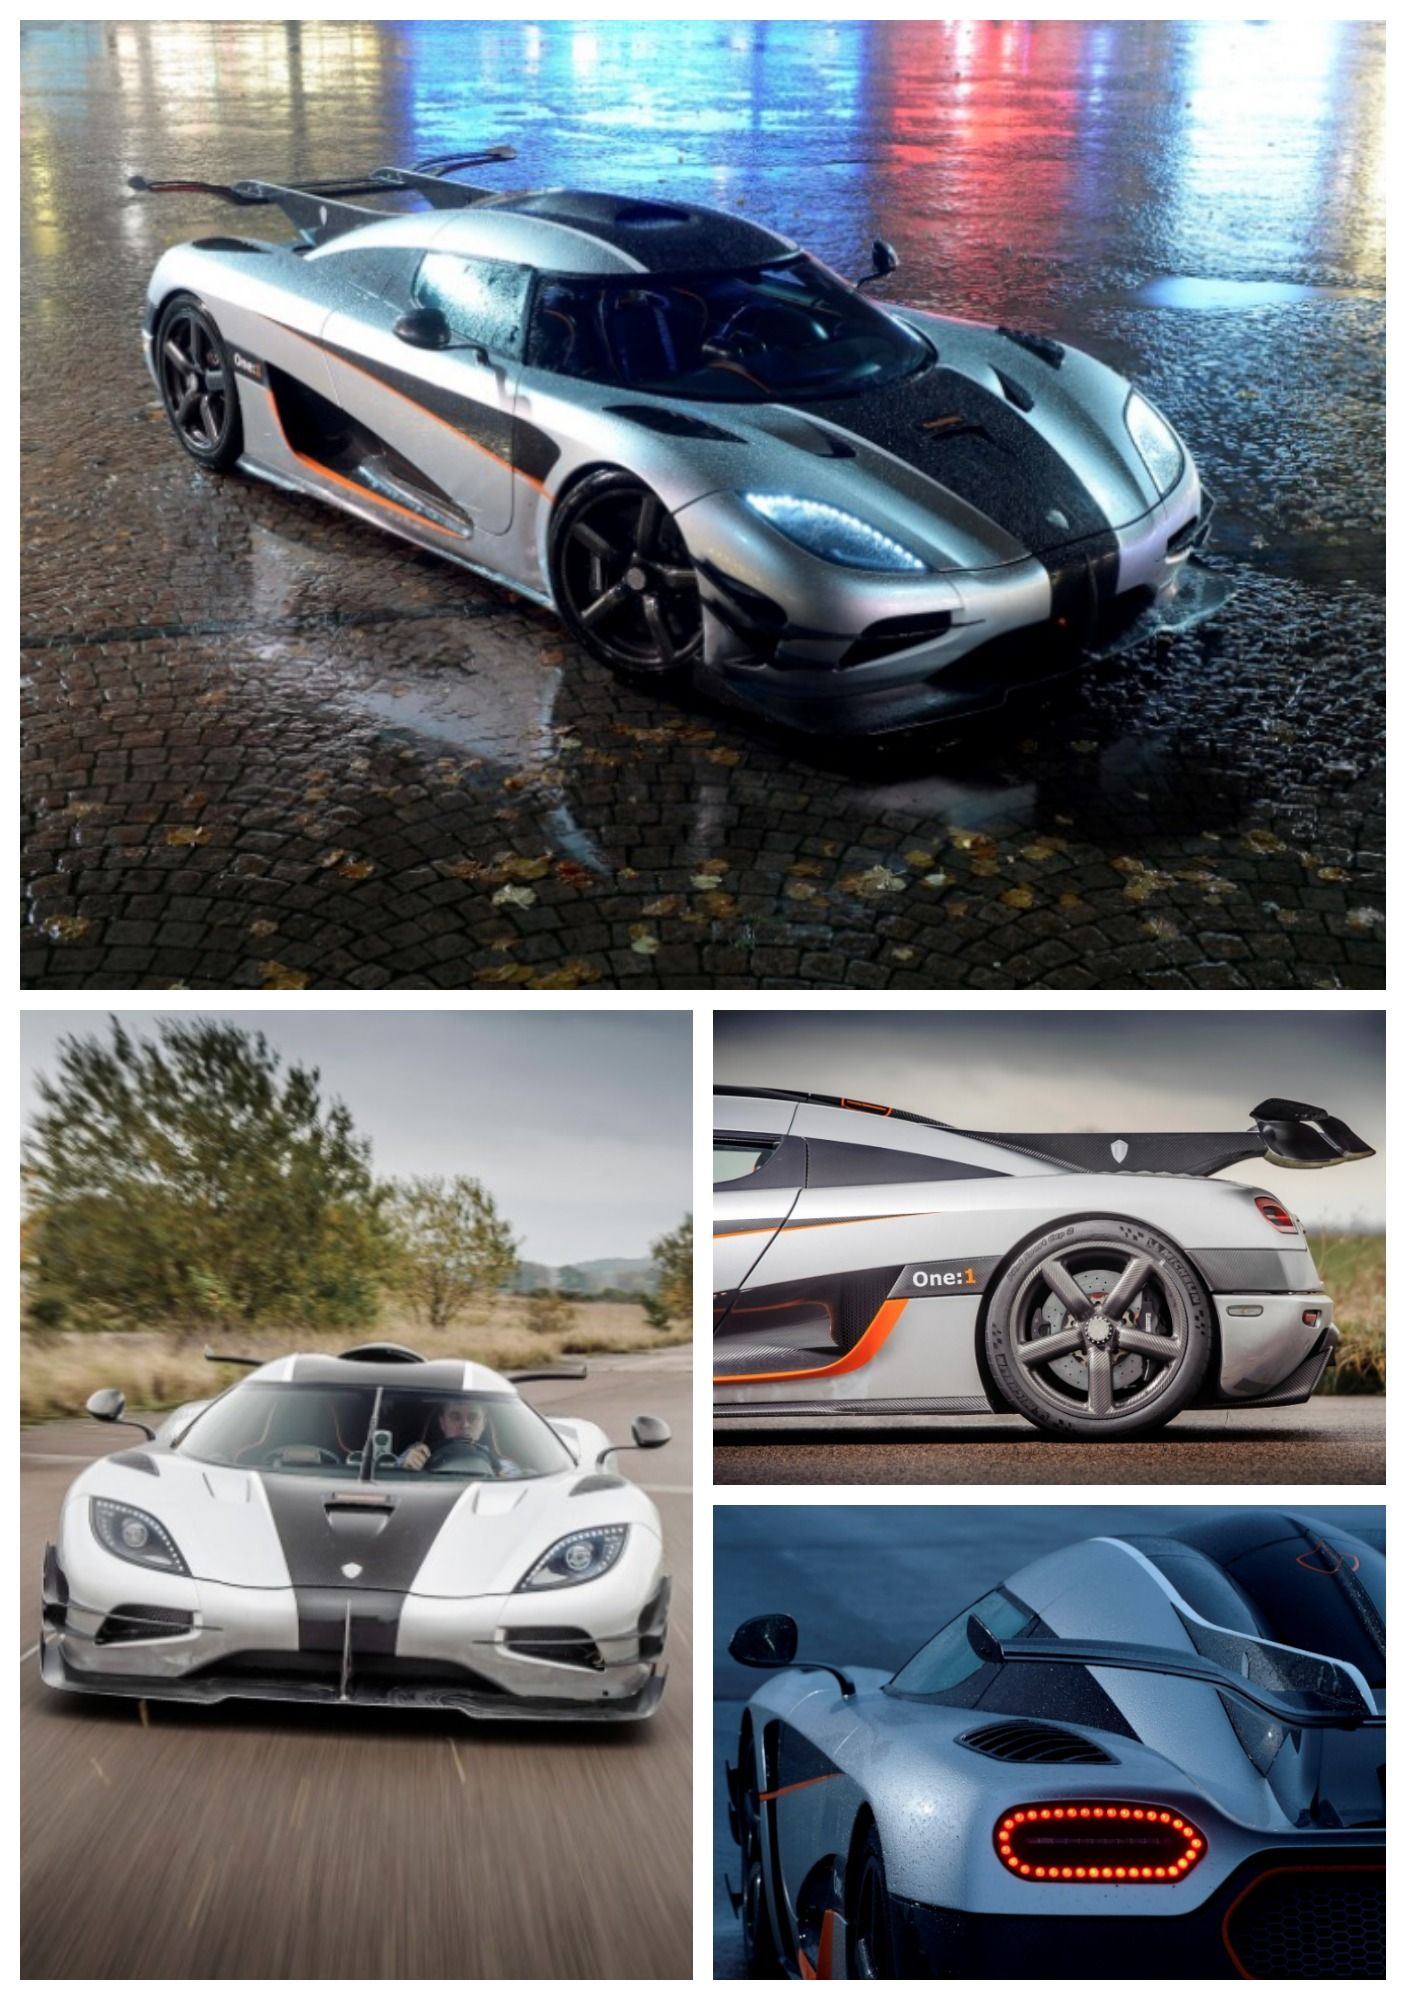 1340hp Koenigsegg One:1 - it doesn't get better than this! Click to see the full gallery.